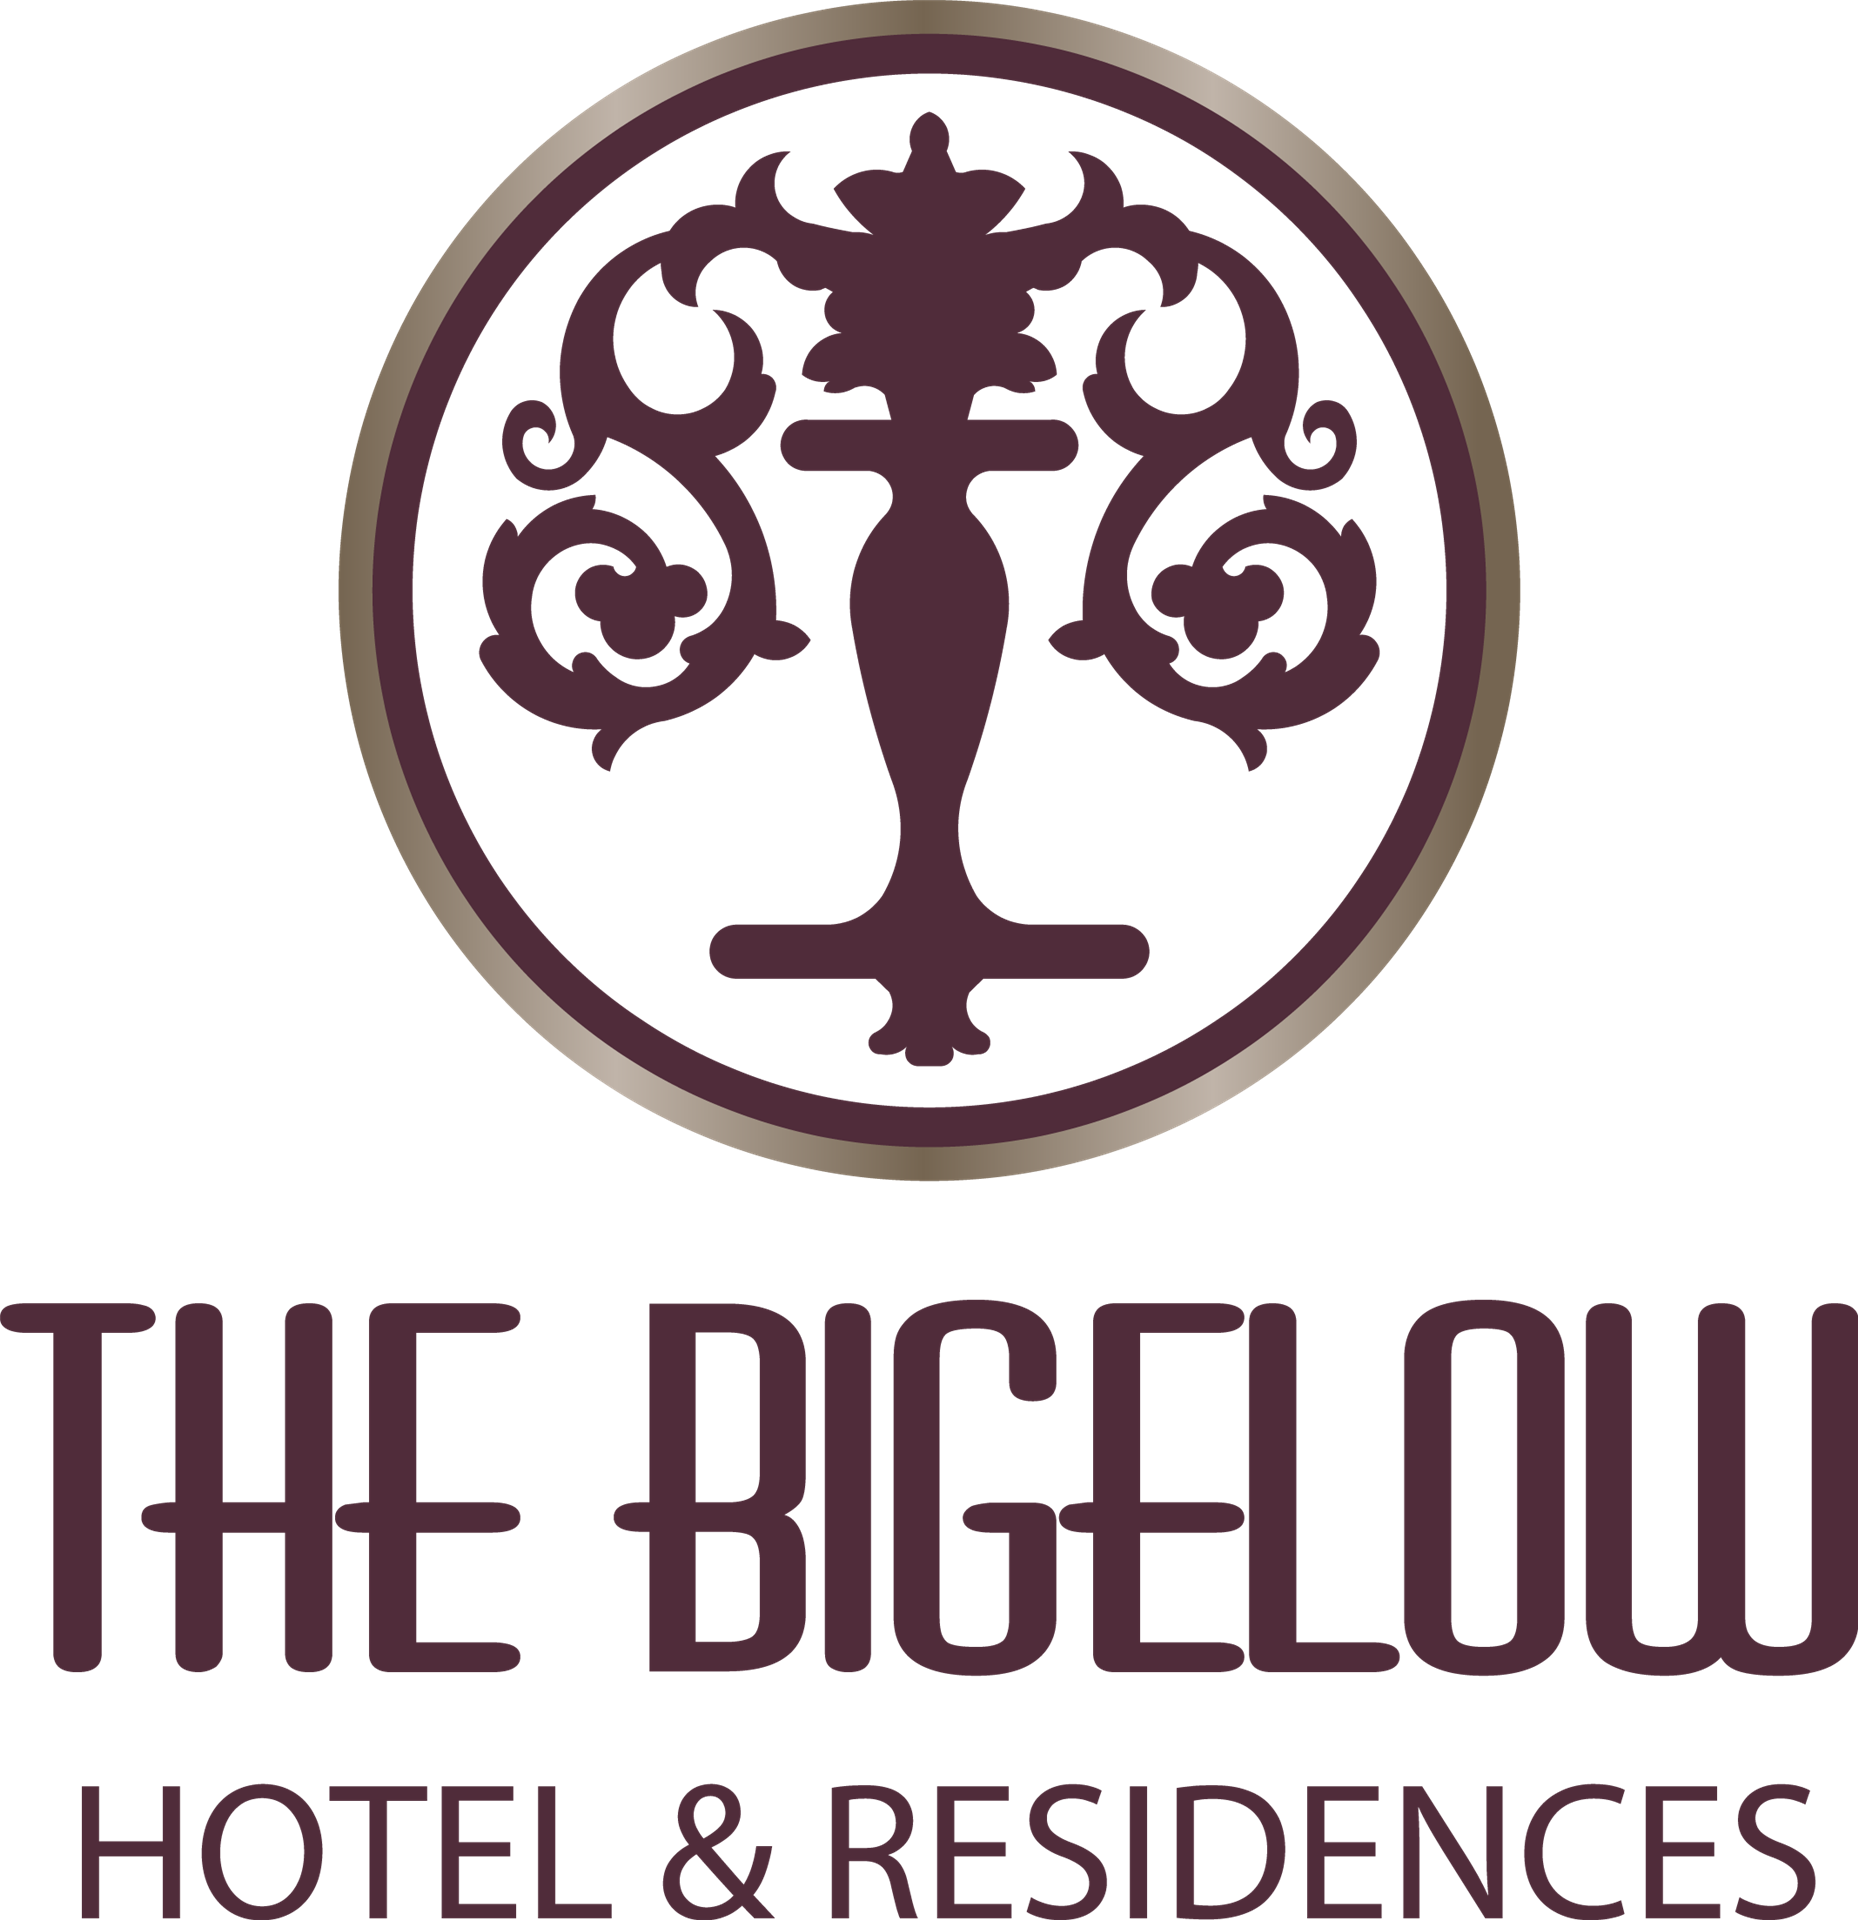 Bigelow Hotel and Residences, Ascend Hotel Collection